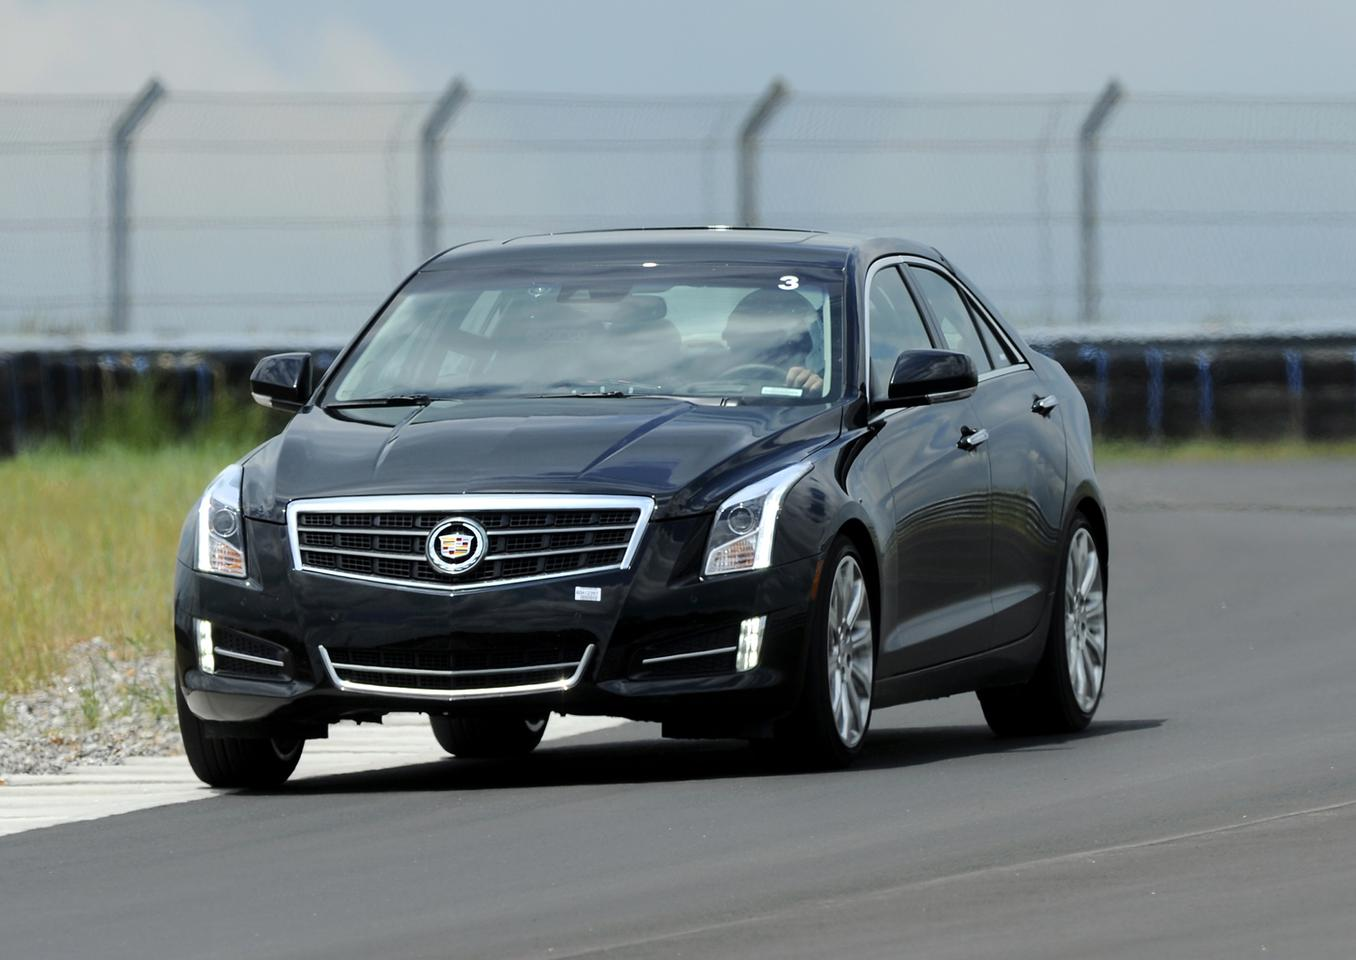 The 2013 model of the Cadillac ATS will include a Driver Assist Package (Photo: Sam Sharpe for Cadillac)